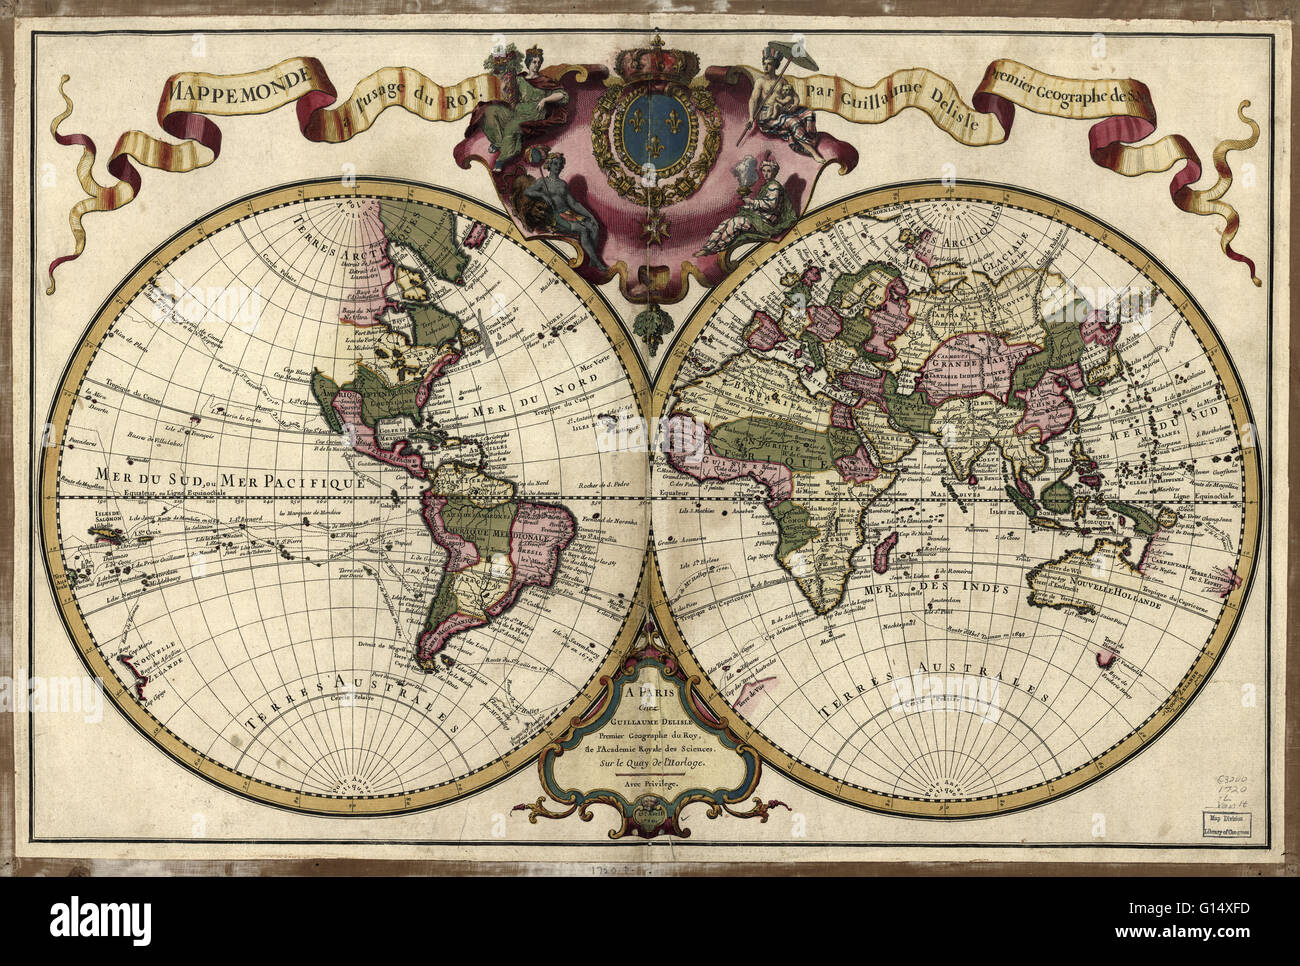 18th Century Map Of The World Published In Paris In 1720 This